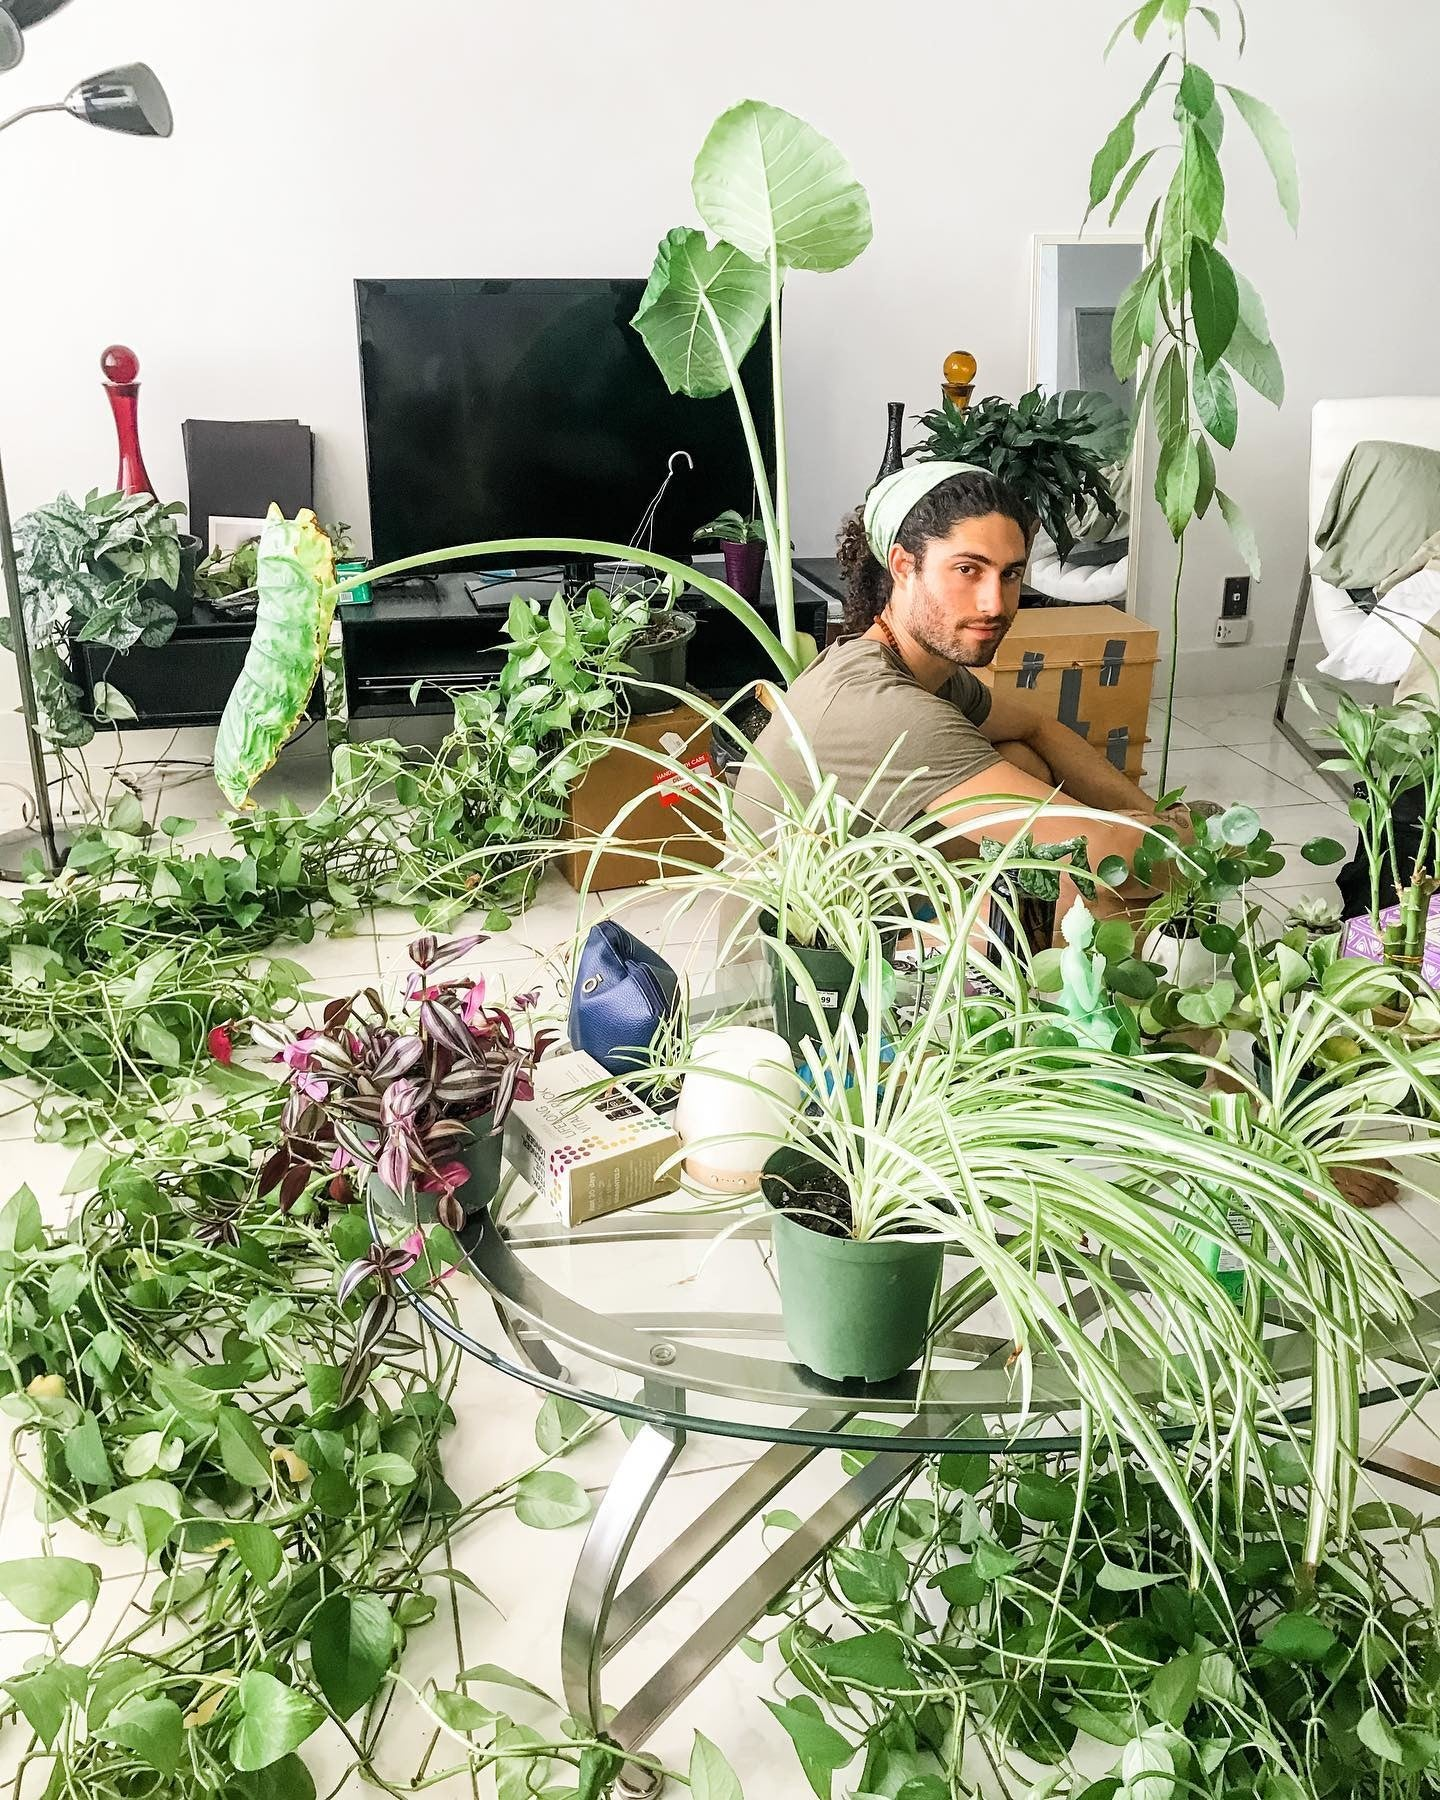 @healingmotions sitting within his T.V. room filled with beautiful plants of all shapes and sizes.